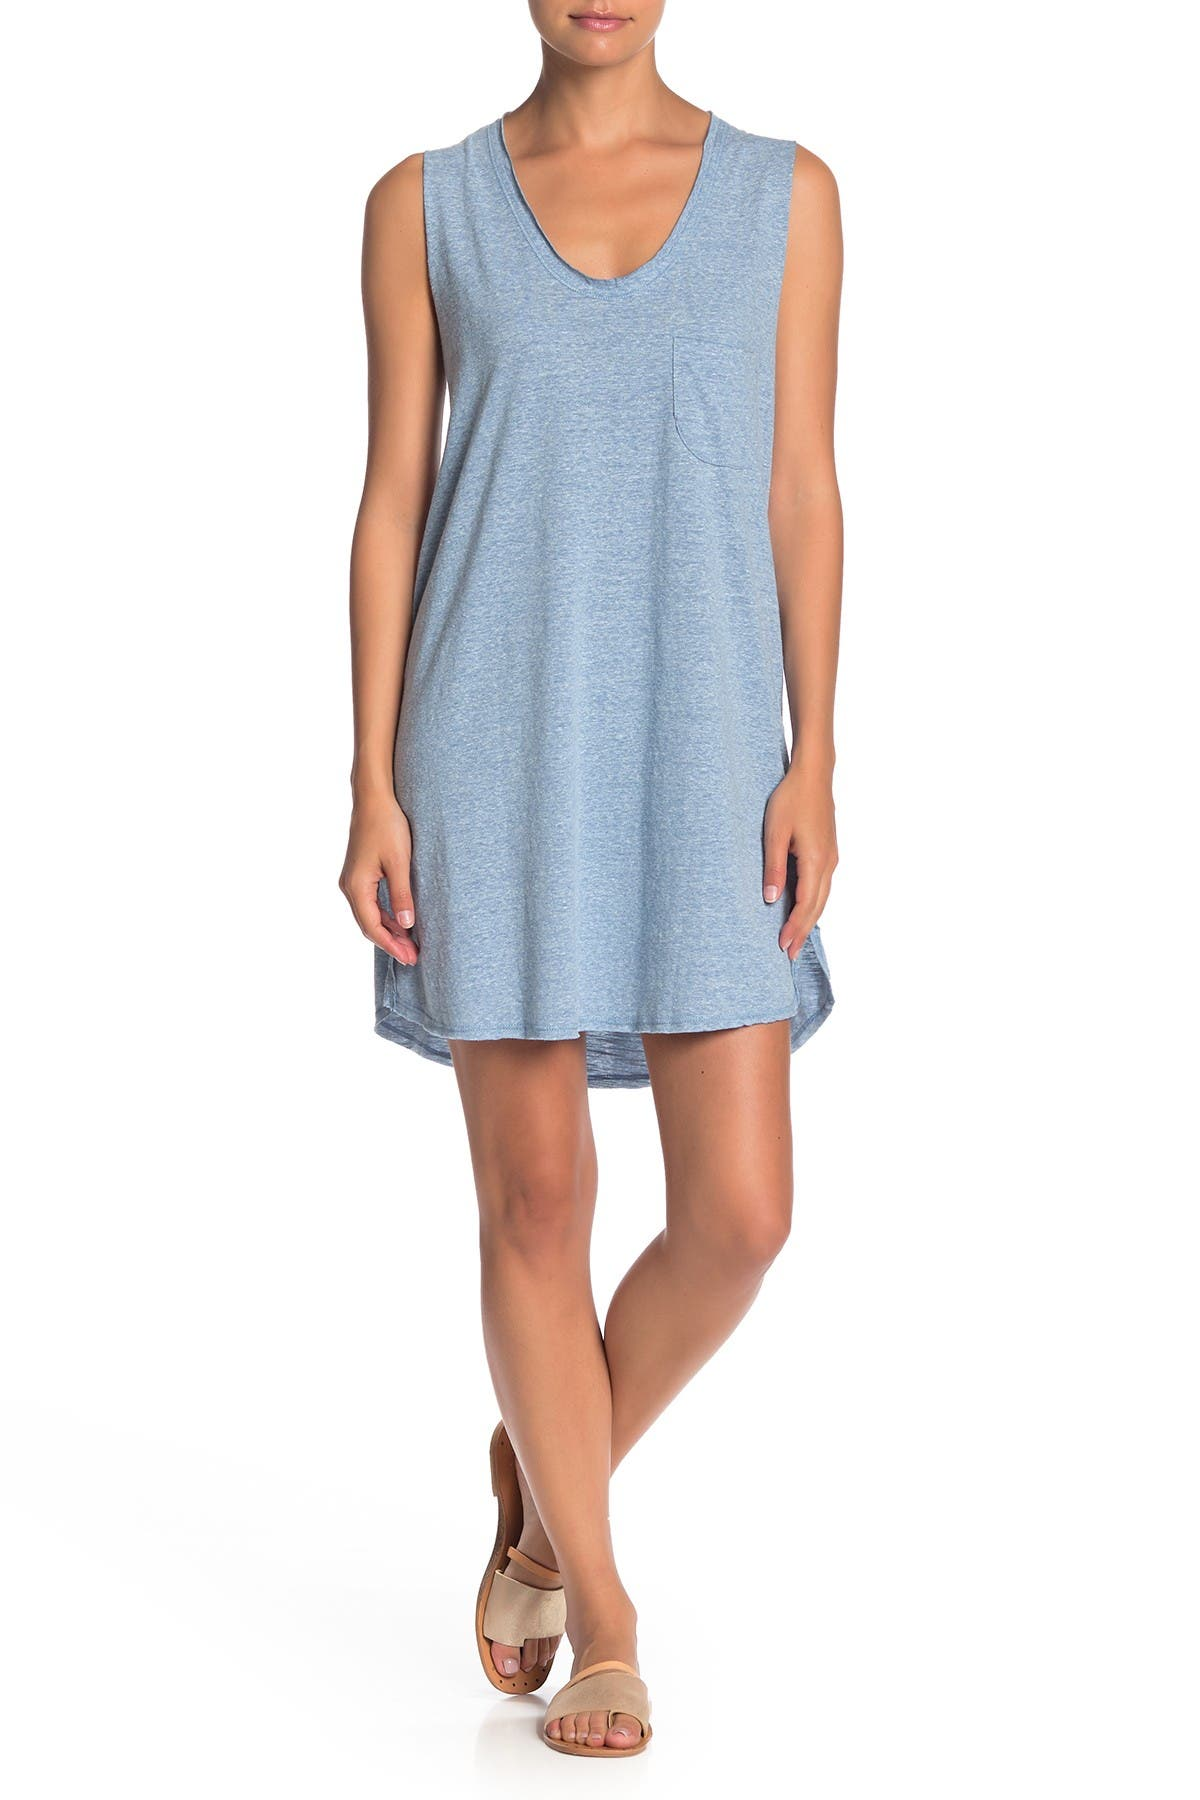 Image of PST by Project Social T Exposed Seam Tank Dress